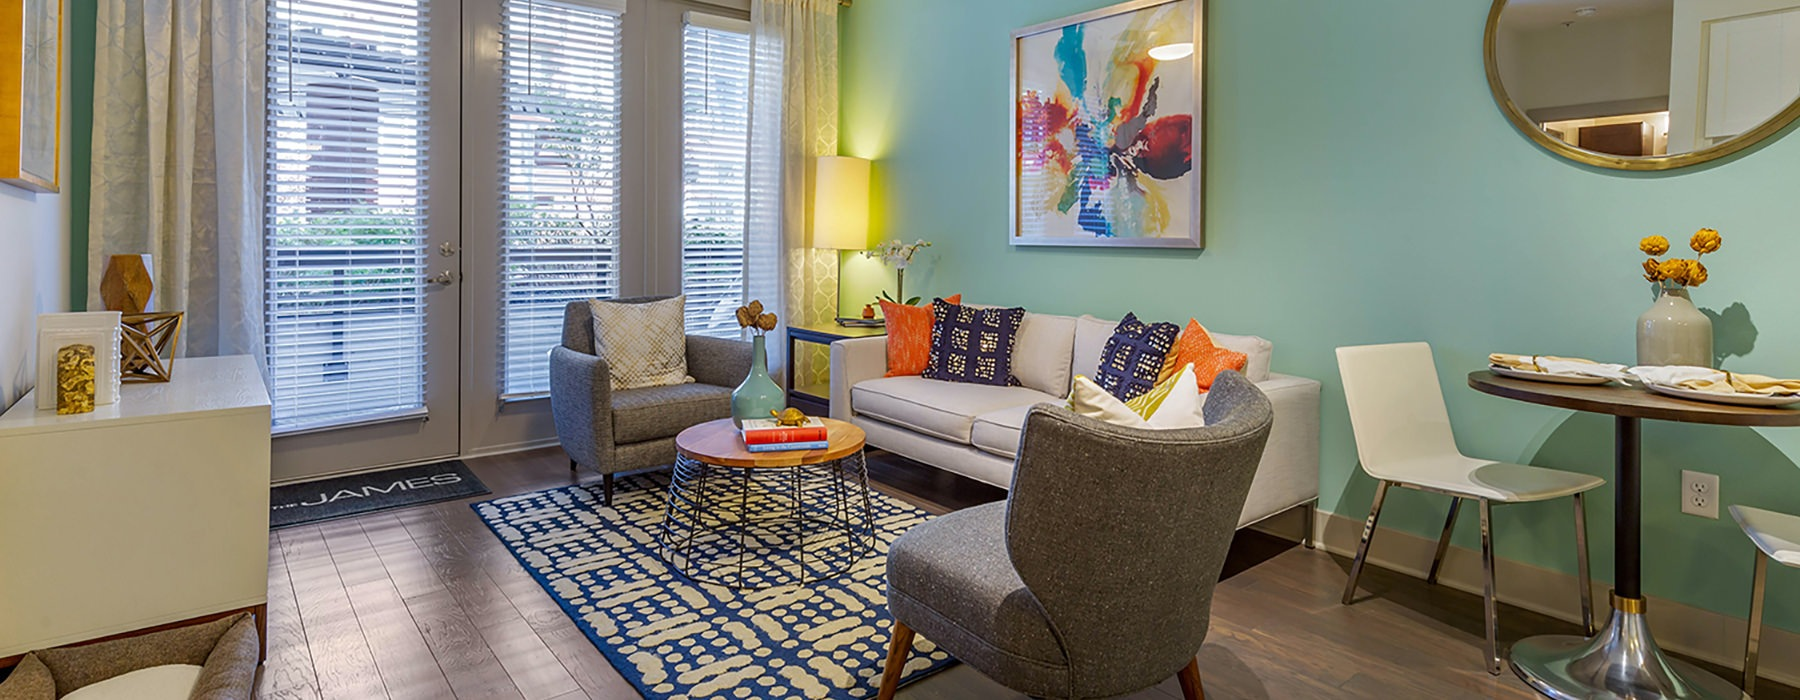 Comfy, bright living room with vibrant colors and furniture